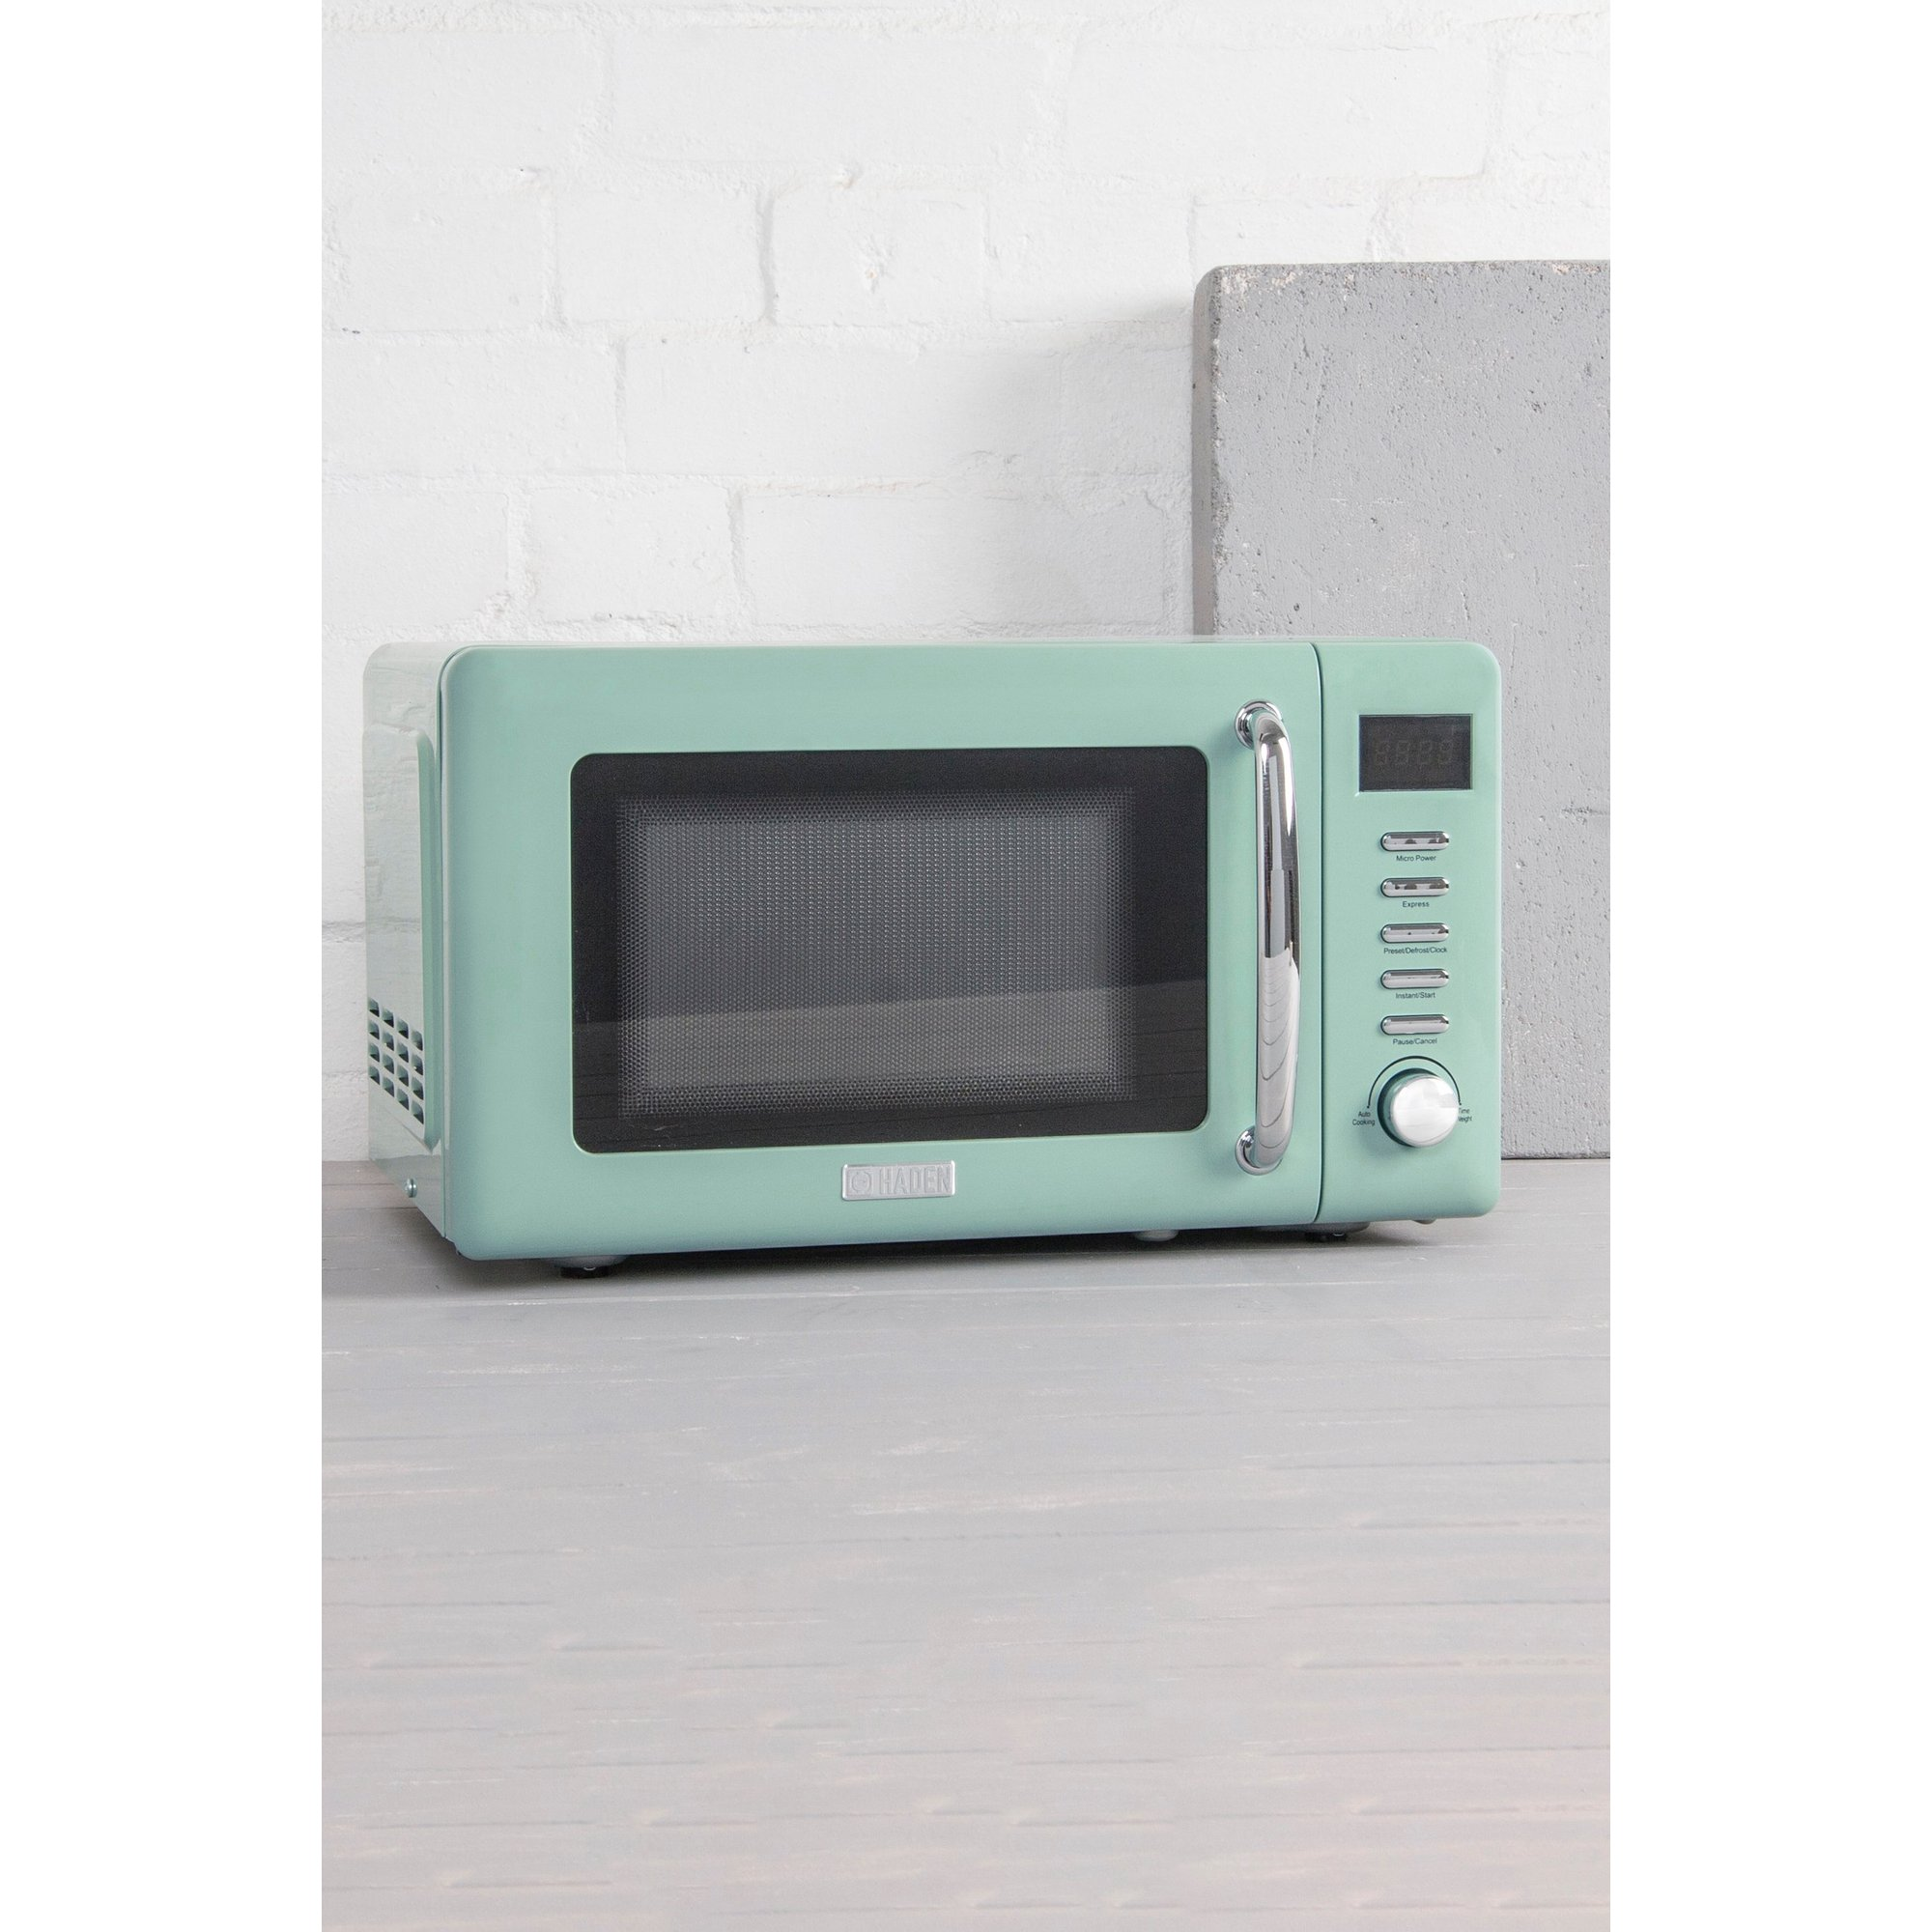 Image of Haden 20L 800W Digital Microwave Oven